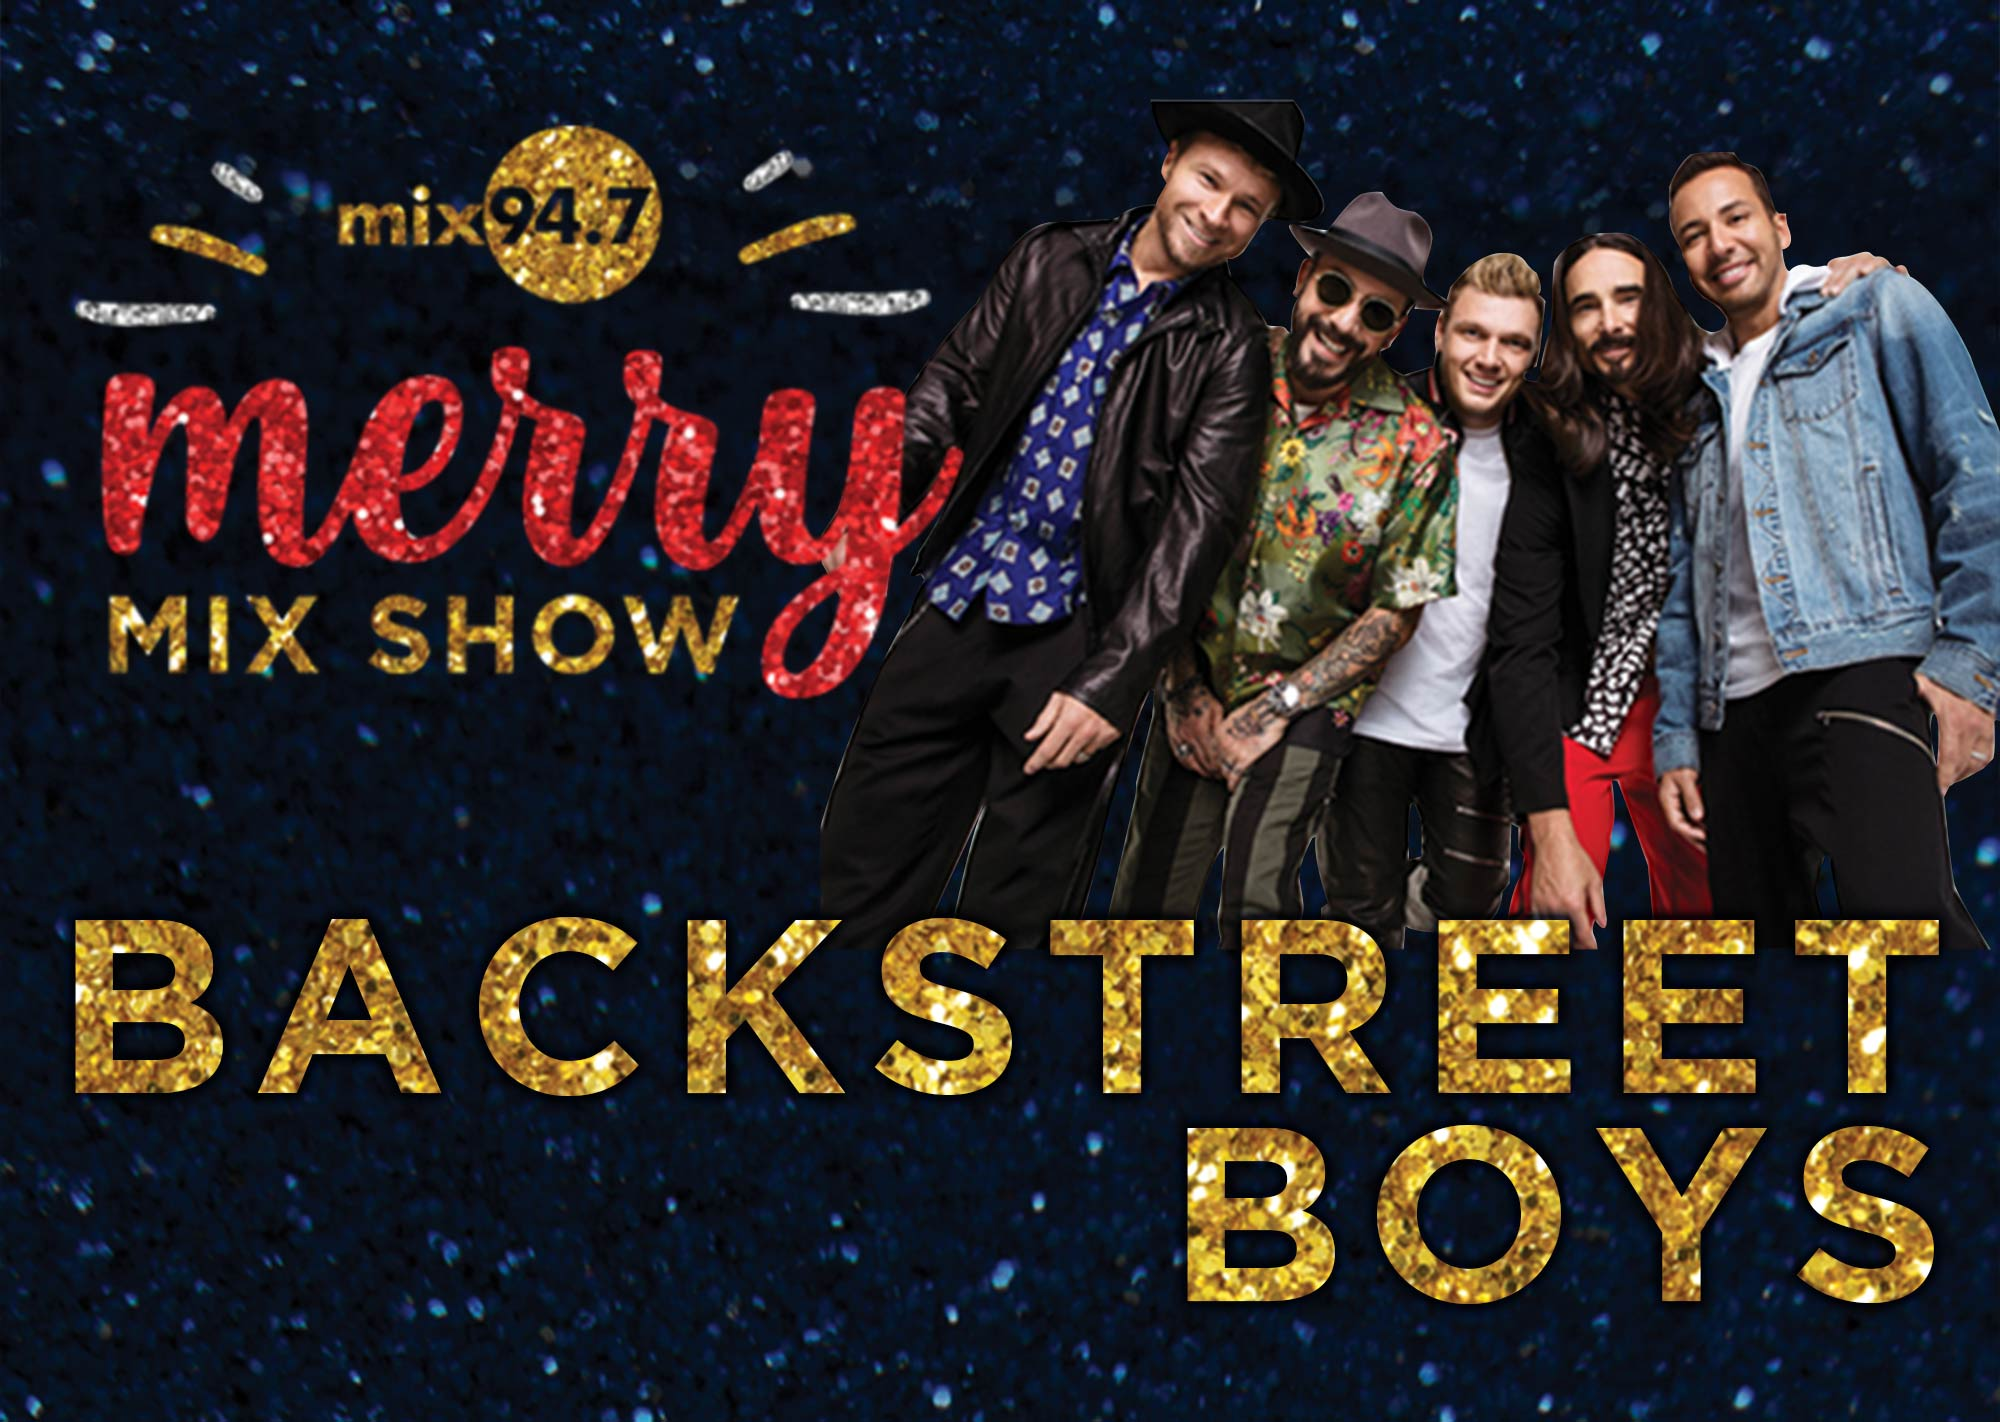 Merry-Mix_Backstreet-Boys-2000x1422.jpg